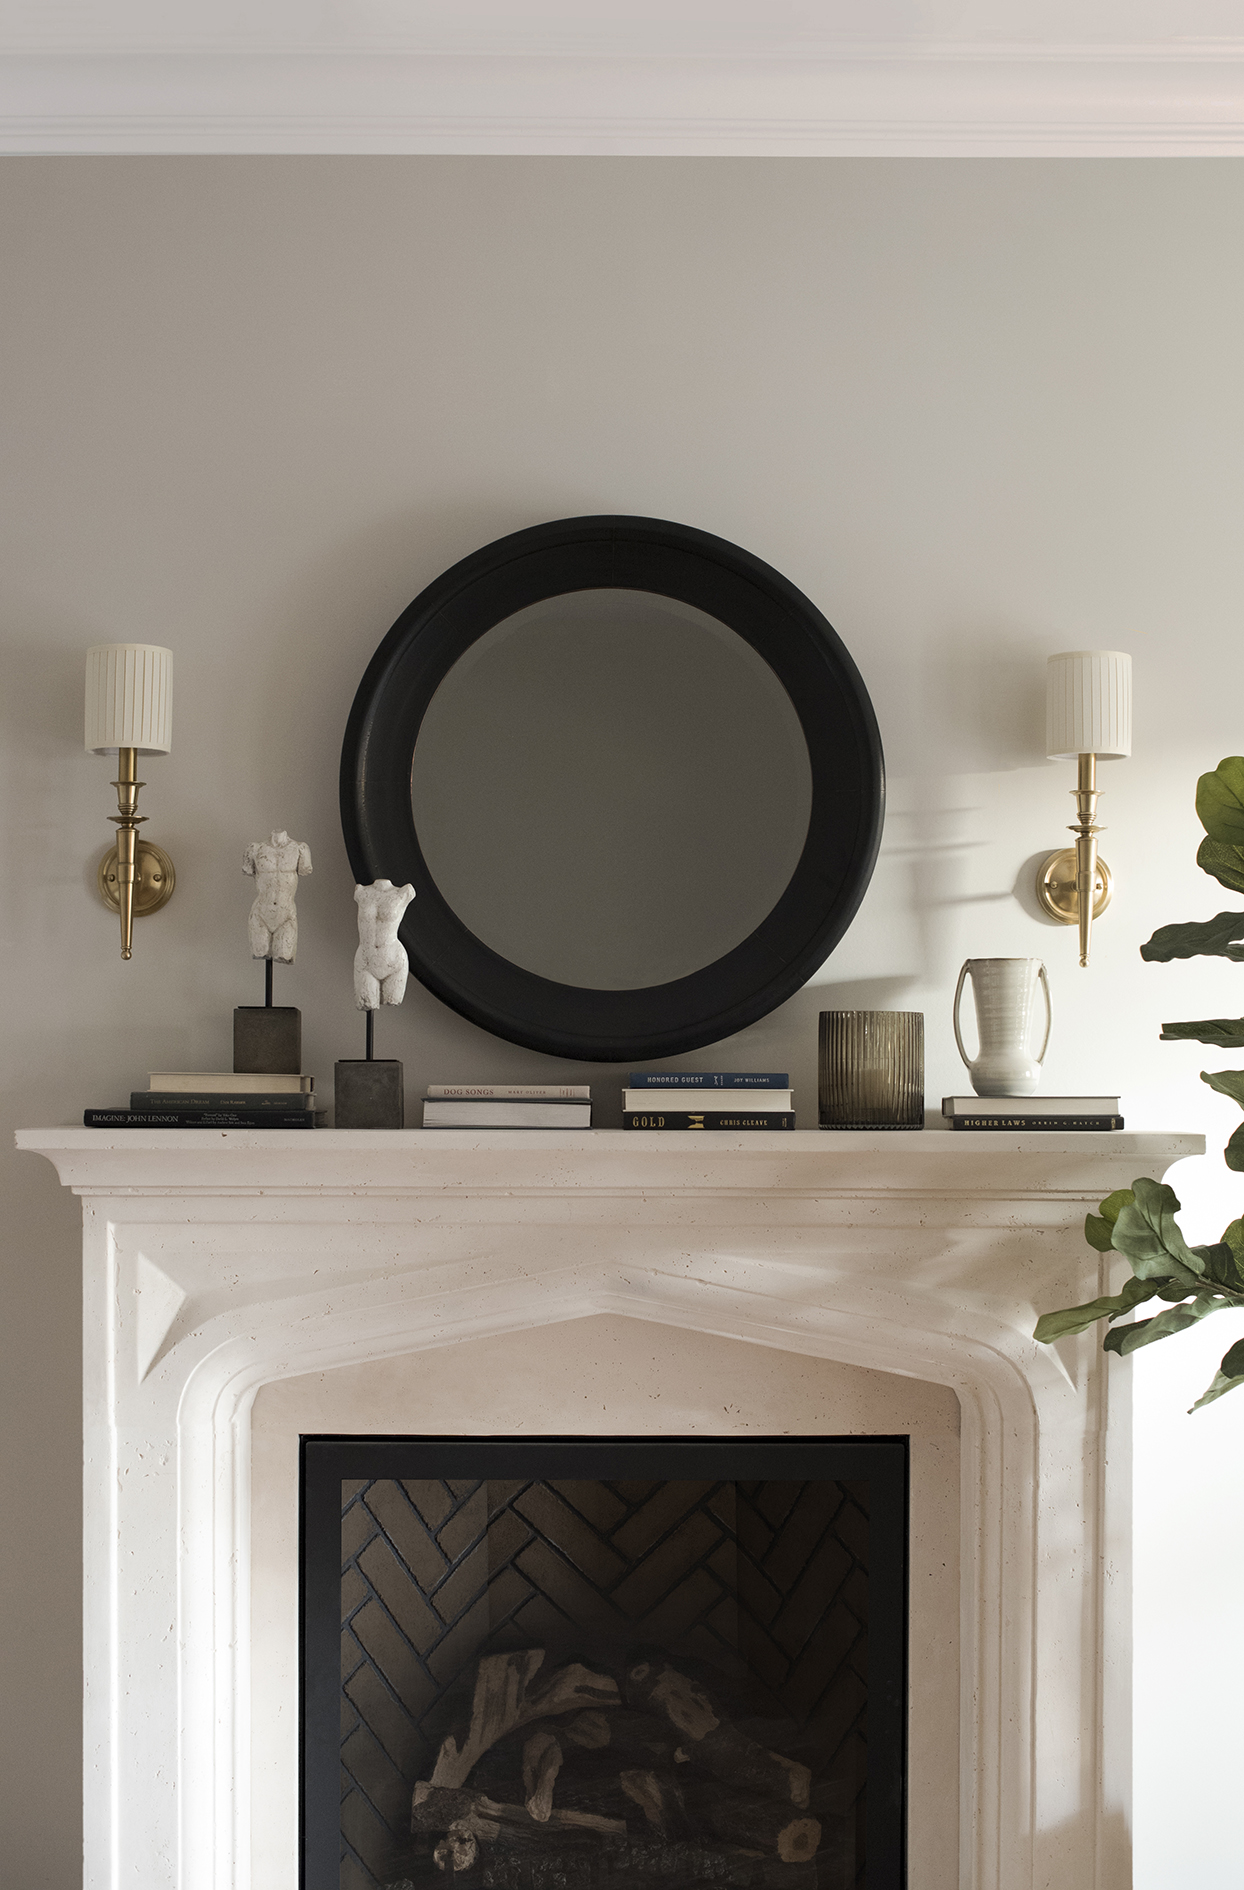 white fireplace against light gray wall with round black mirror above